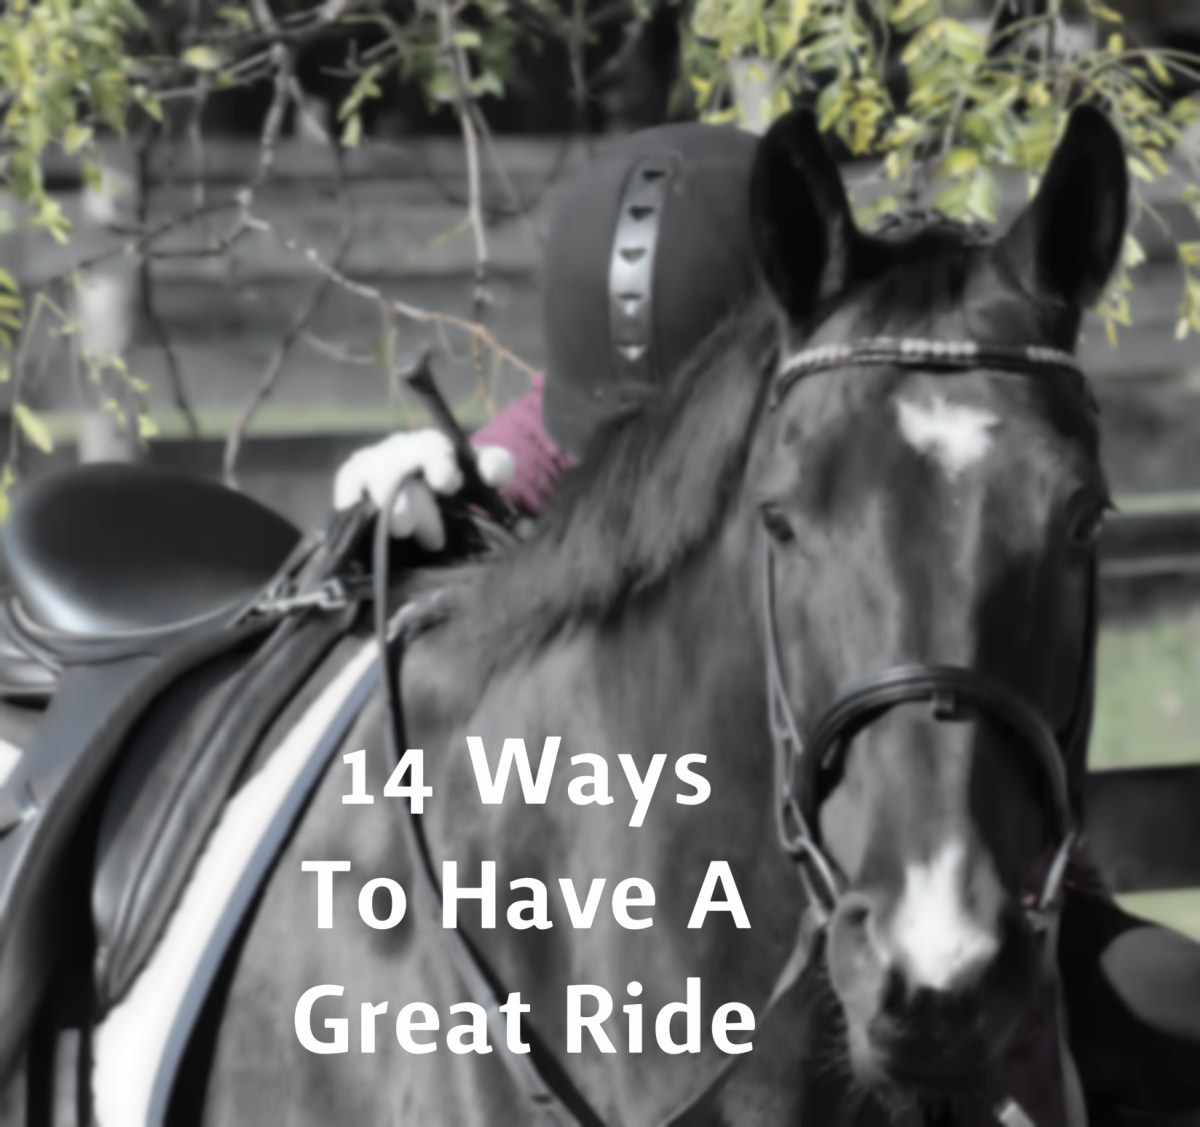 14 Ways To Have A Great Ride